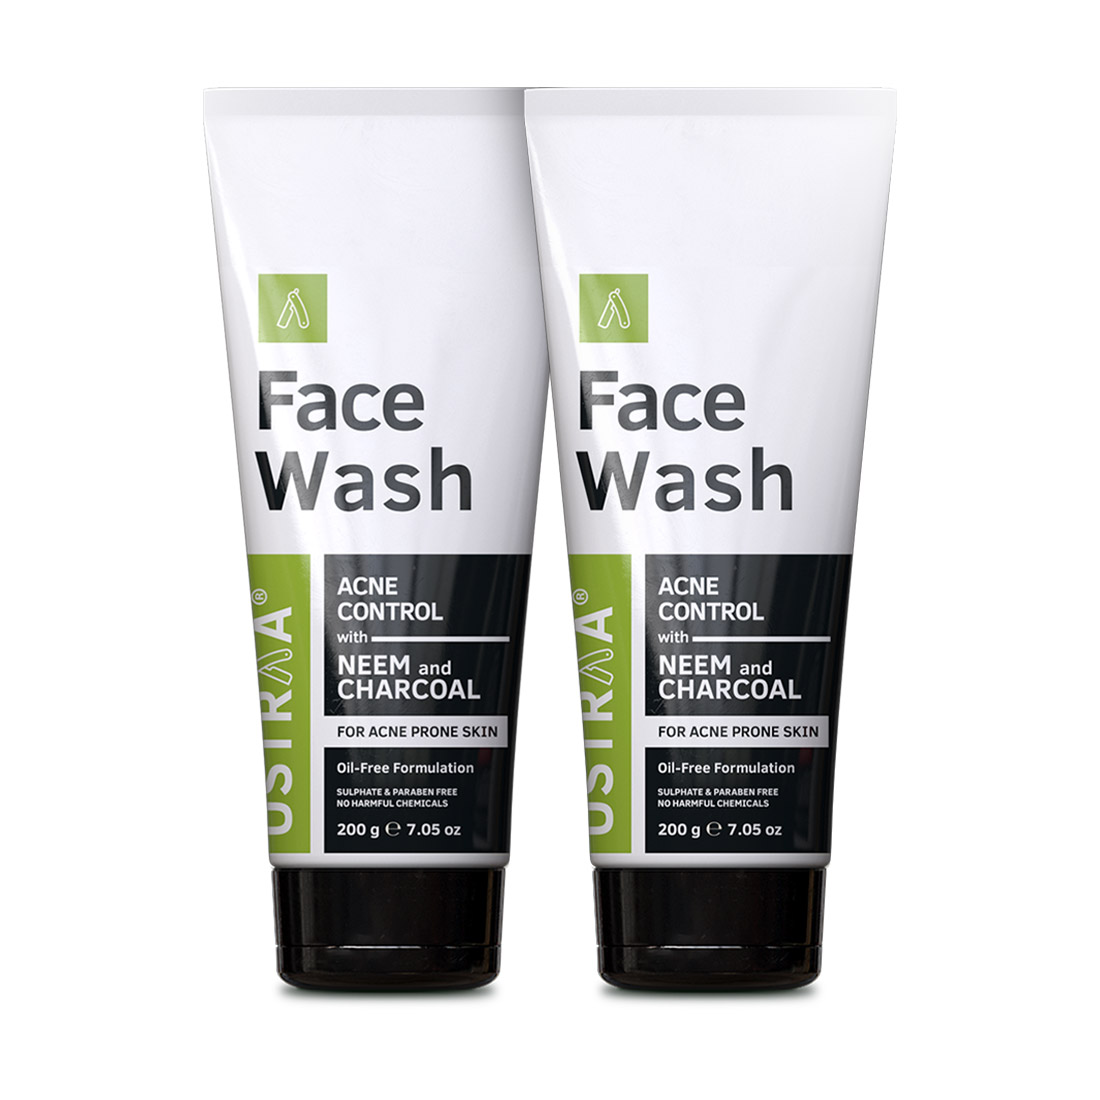 Ustraa | Ustraa Face Wash Acne Control - With Neem & Charcoal - 200g Set of 2